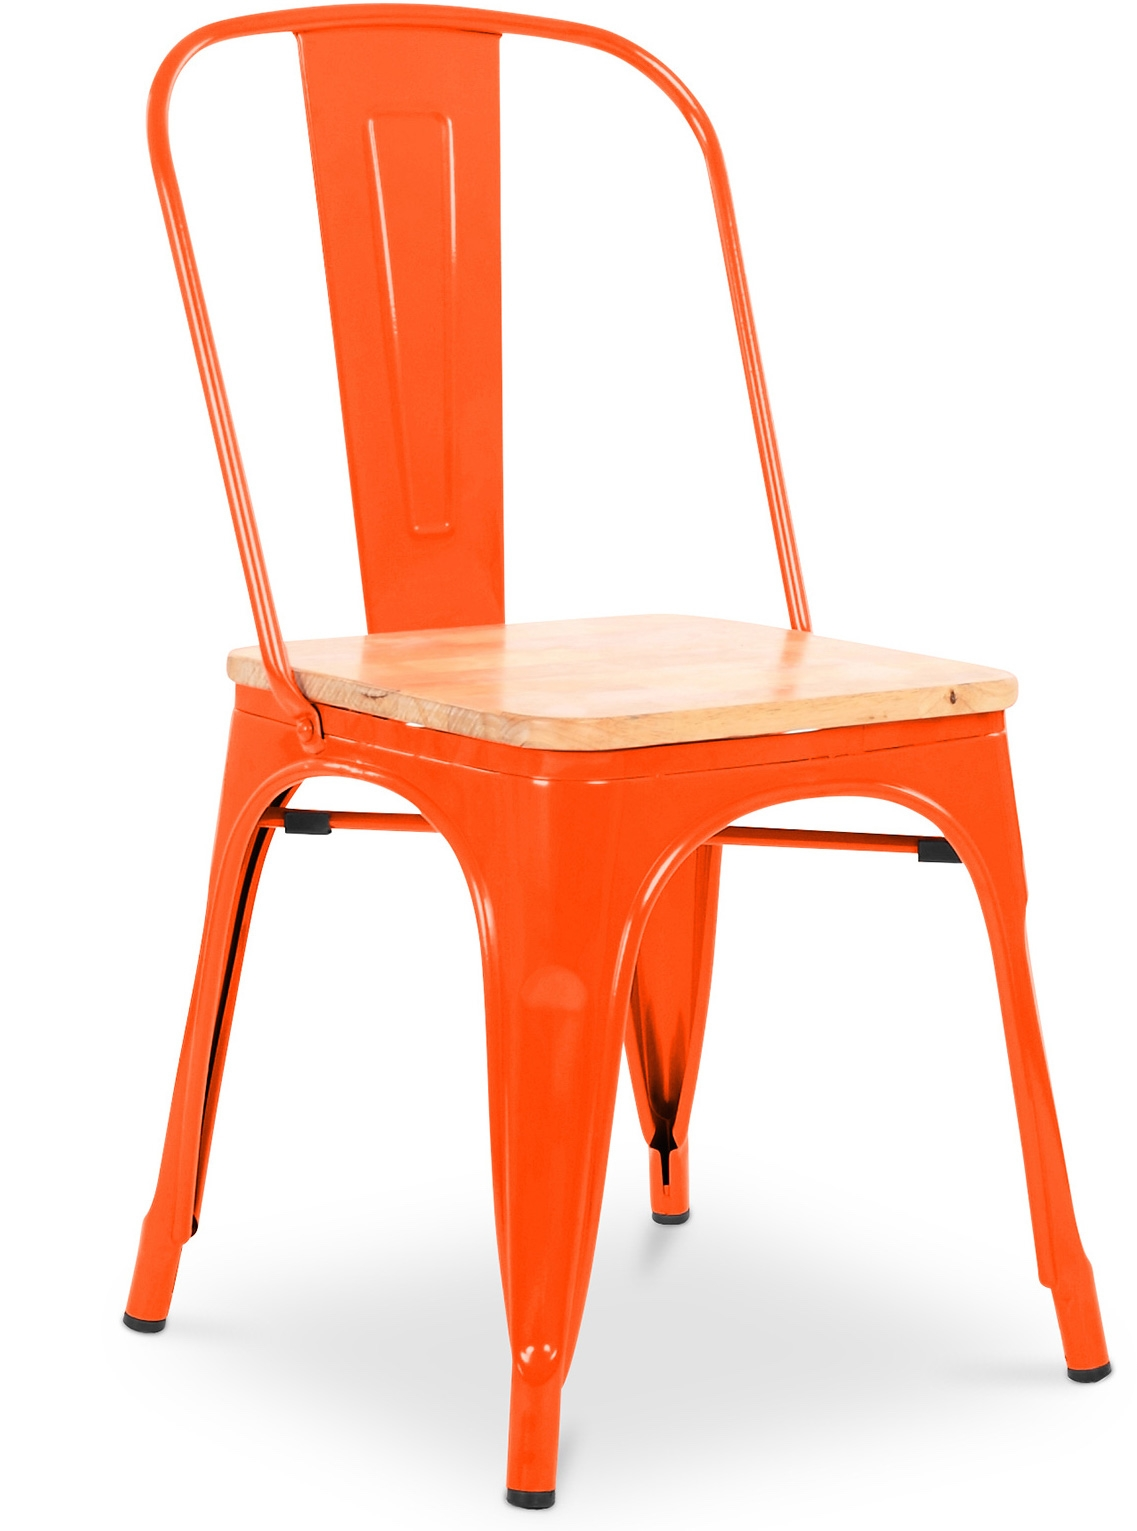 Chaise Métal Orange assise Bois clair Industriel LesTendances fr # Chaise Tolix Assise Bois